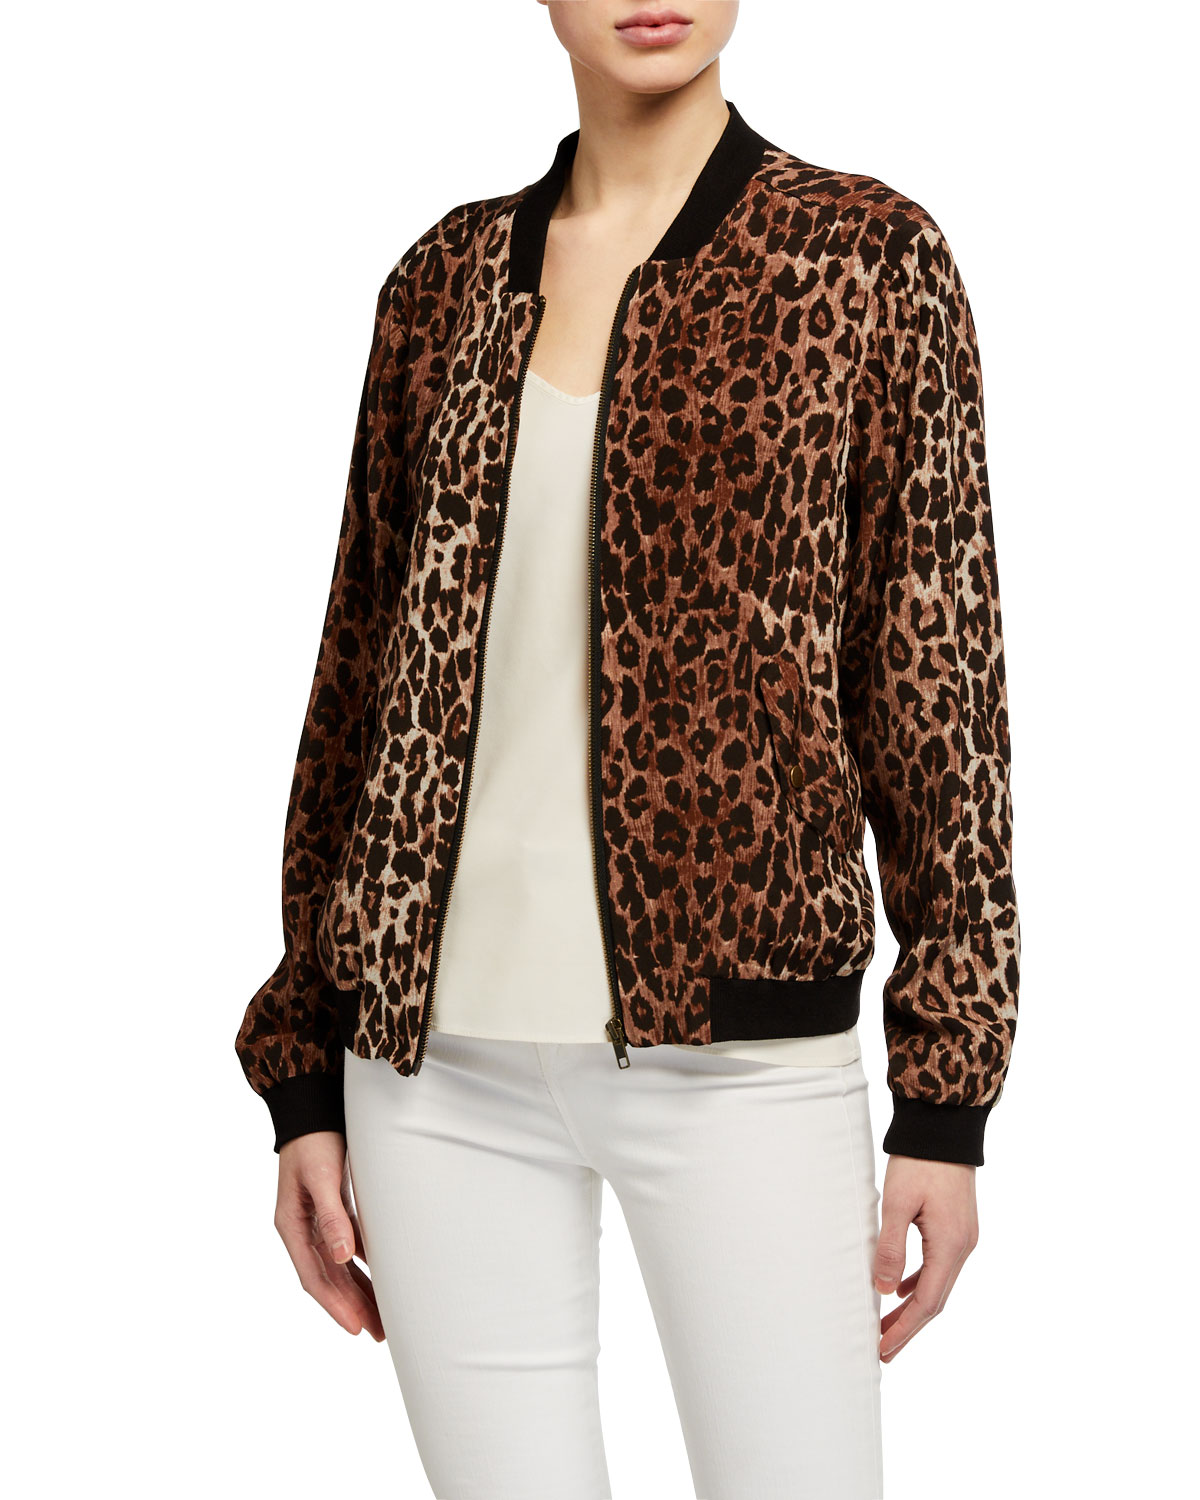 Johnny Was Leopard Print Silk Bomber Jacket w/ Rose Print Lining